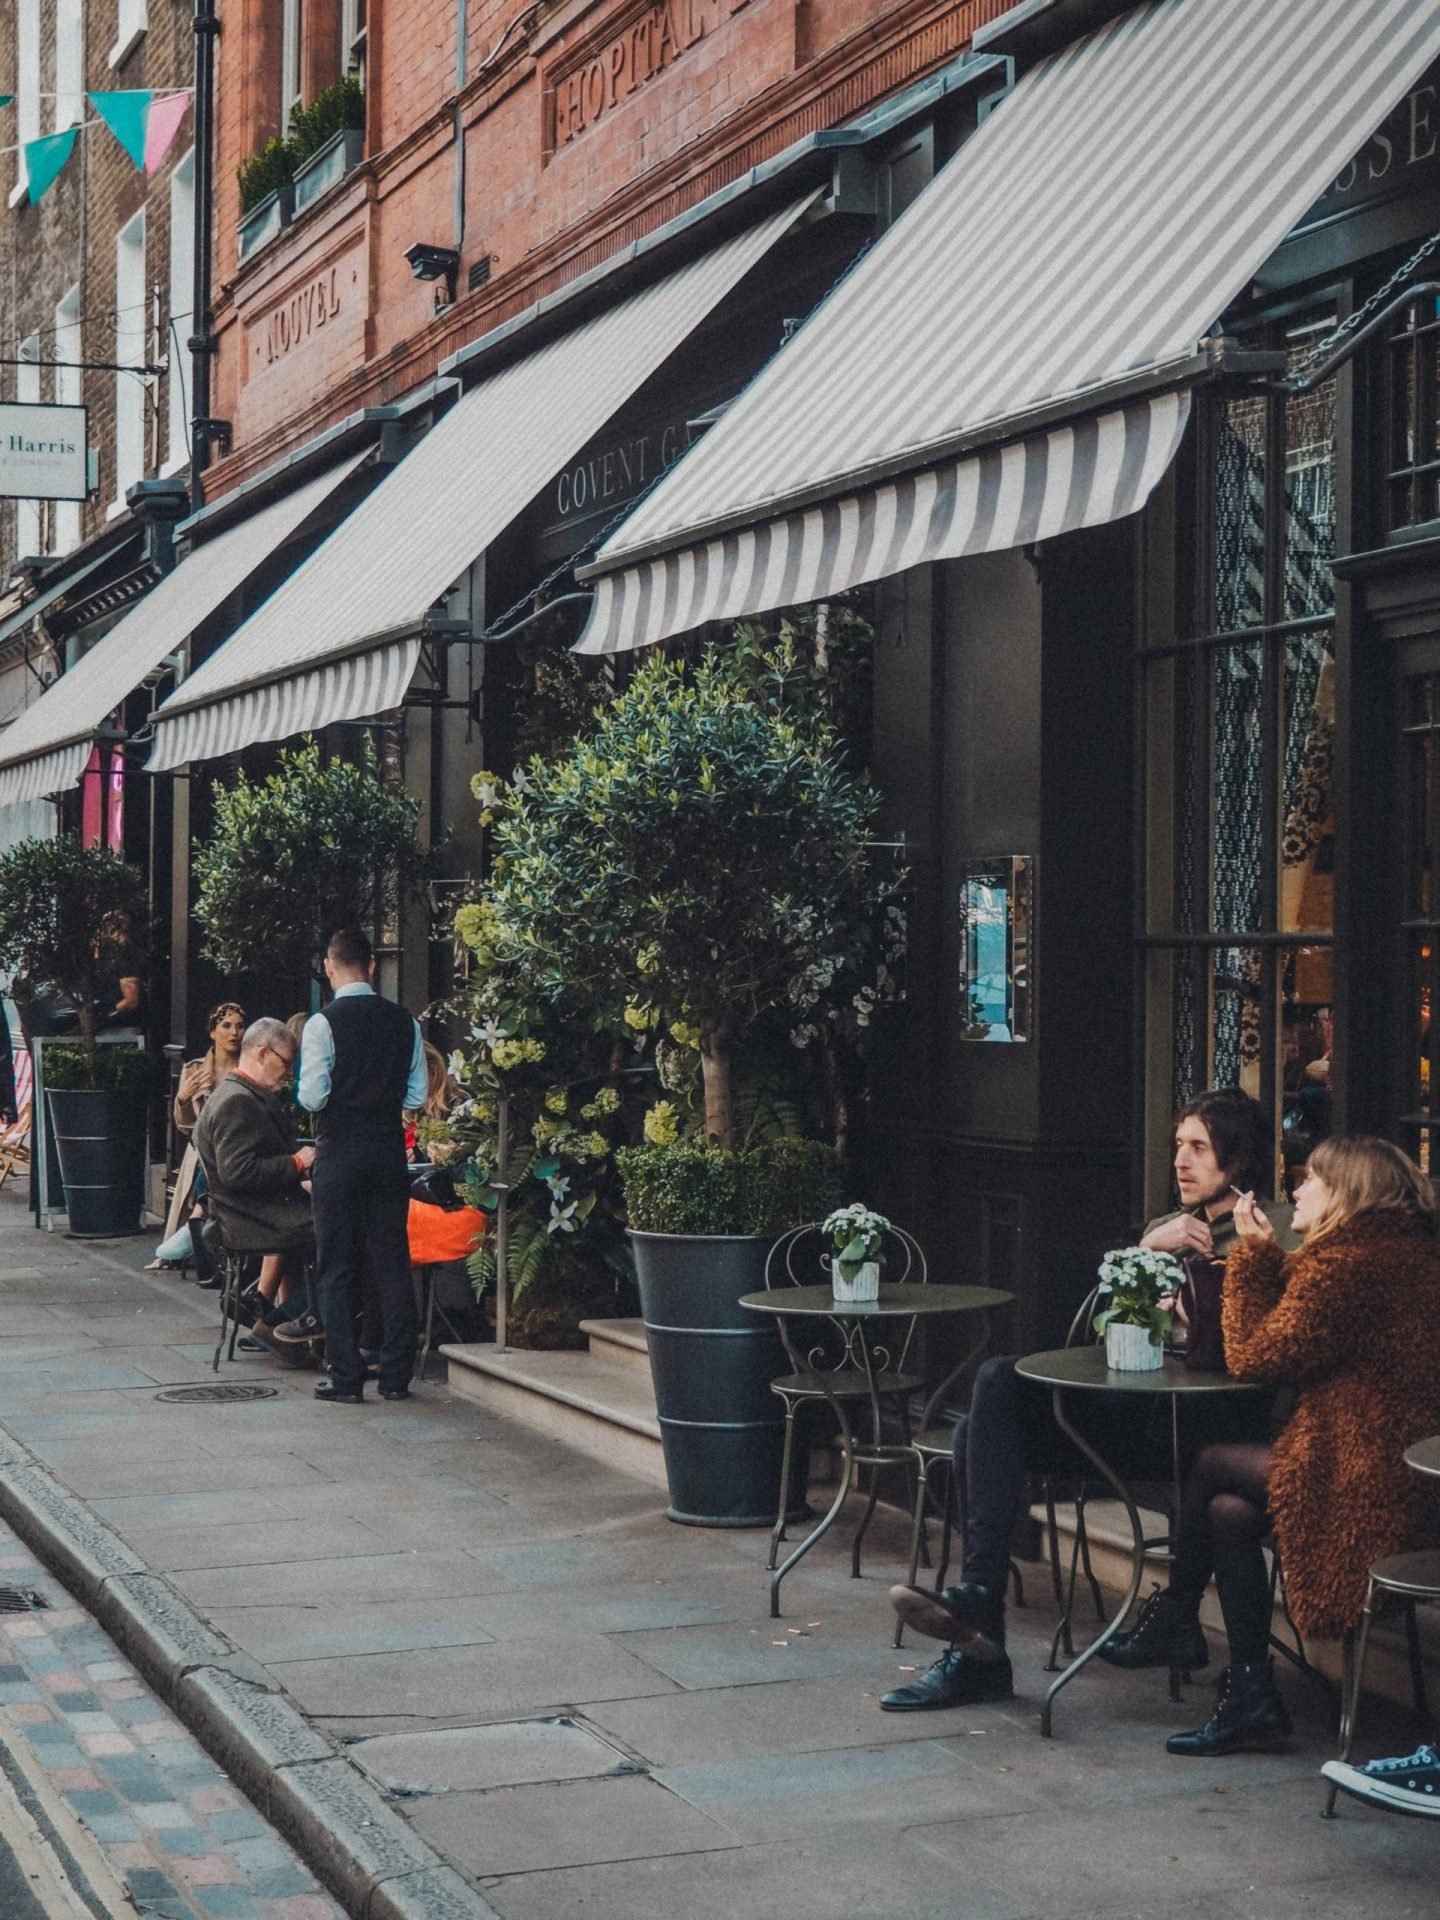 My travel guide to Covent Garden, London